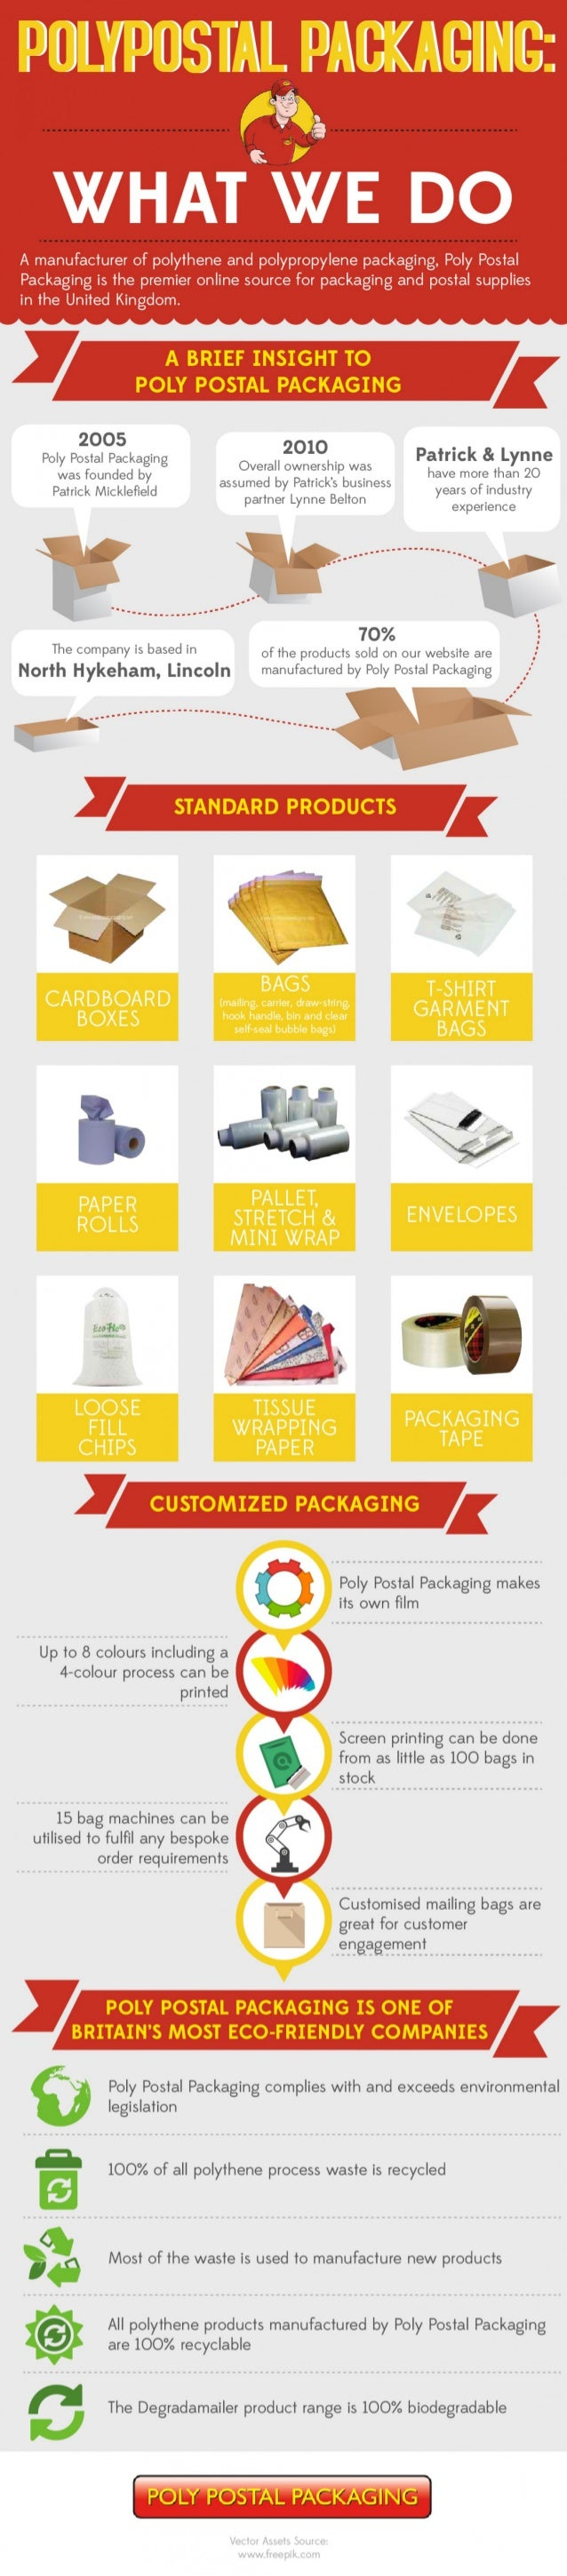 Poly Postal Packaging 10th Anniversary Infographic